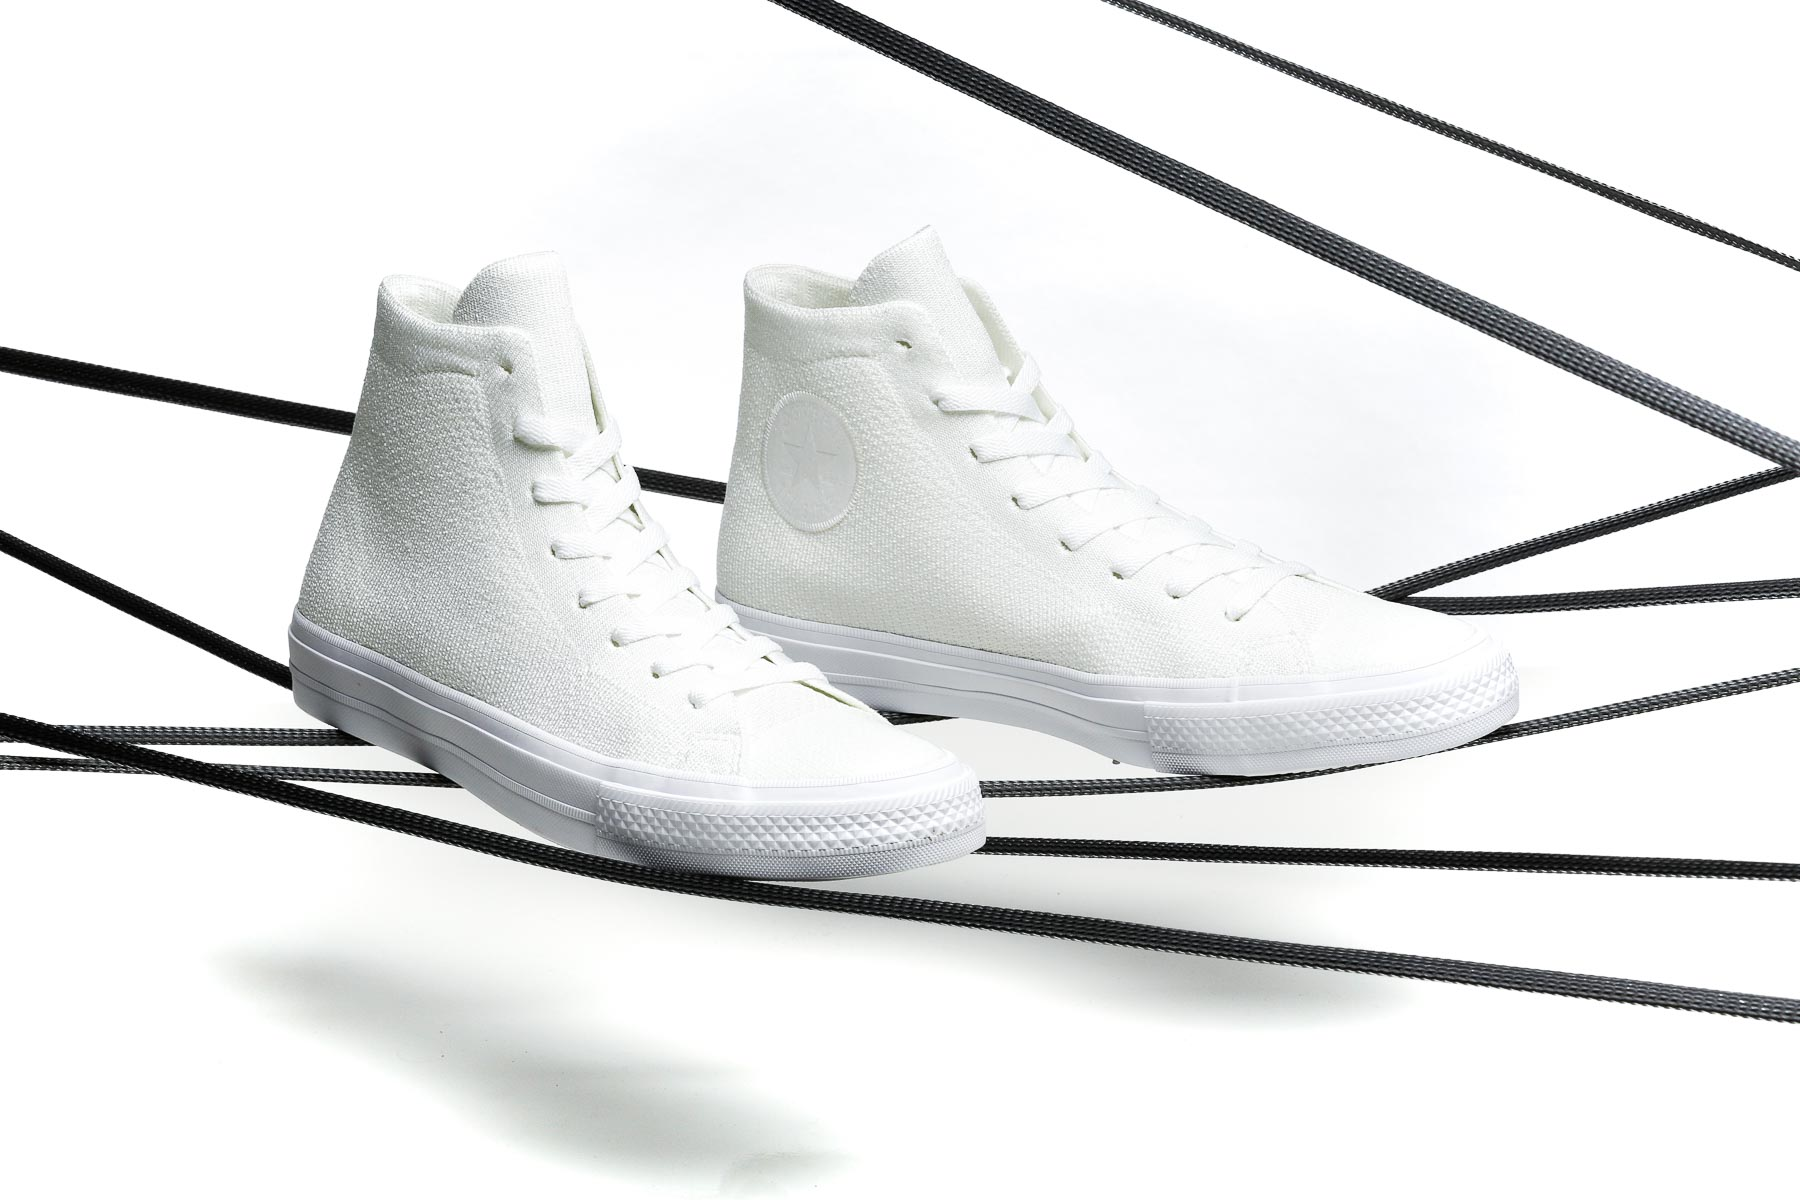 converse-chuck taylor all star x nike flyknit-7